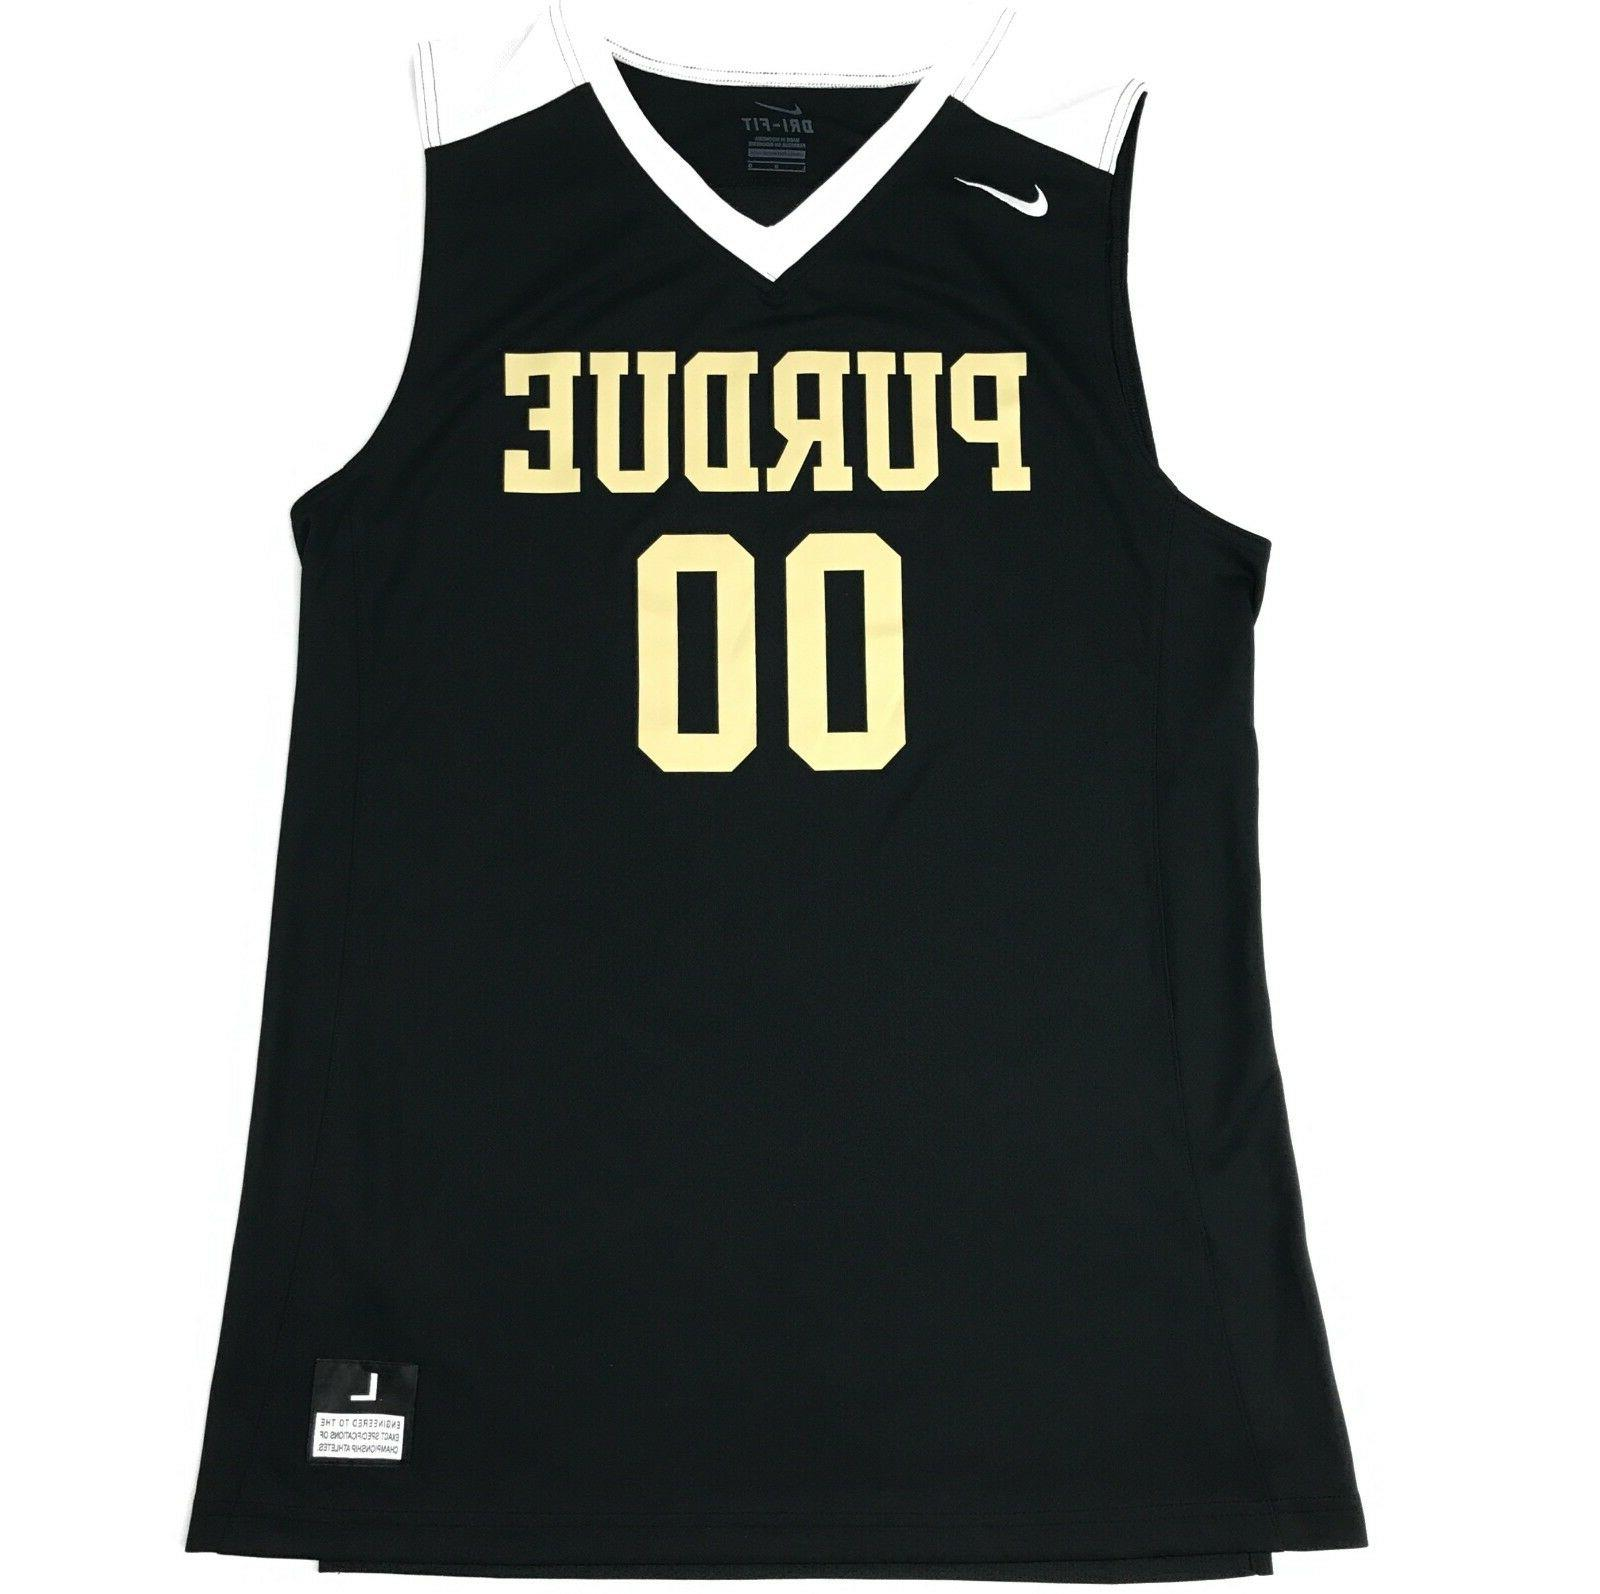 New Nike Purdue Boilermakers Basketball Jersey Men's Large B